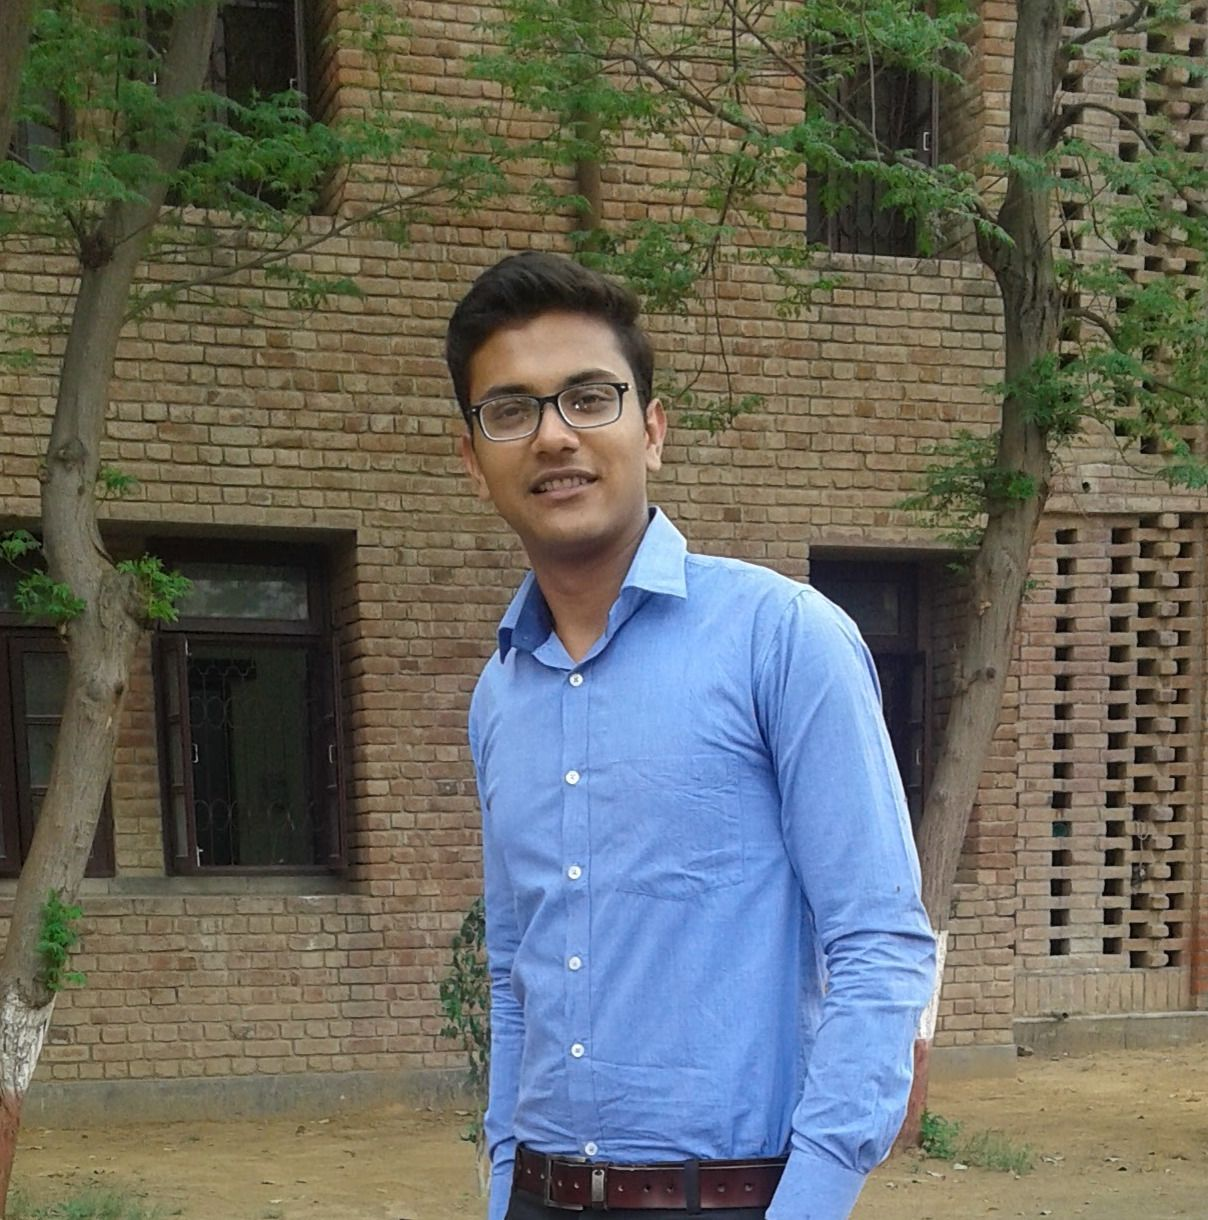 Dhruv Bansal Hacker Noon profile picture